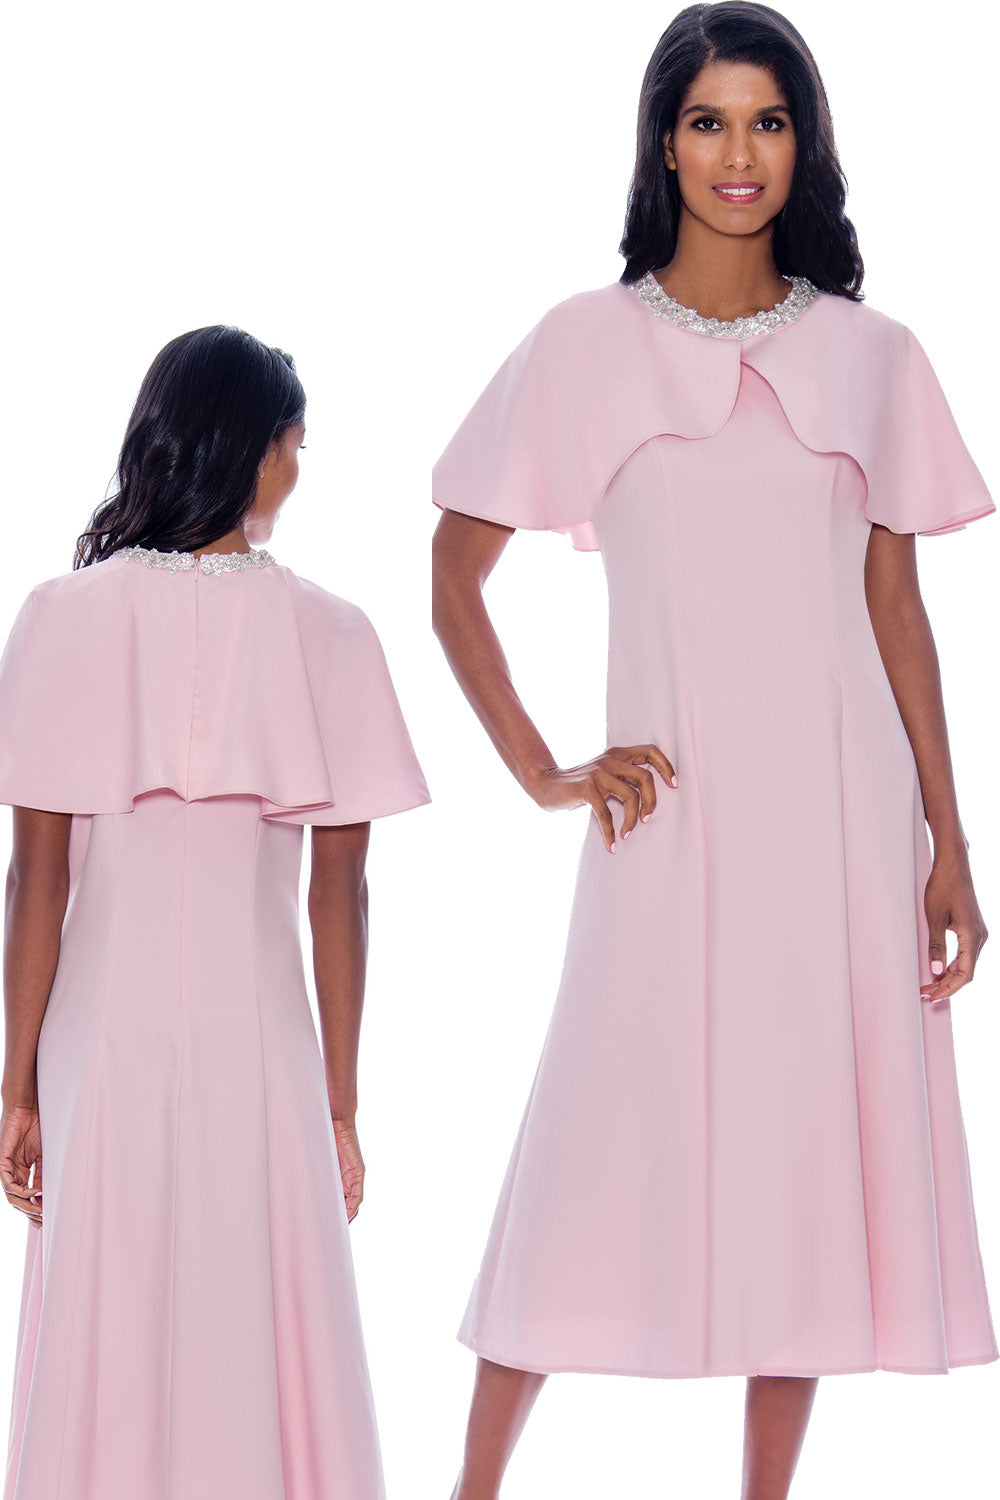 Dress By Nubiano 1901 - Church Suits For Less